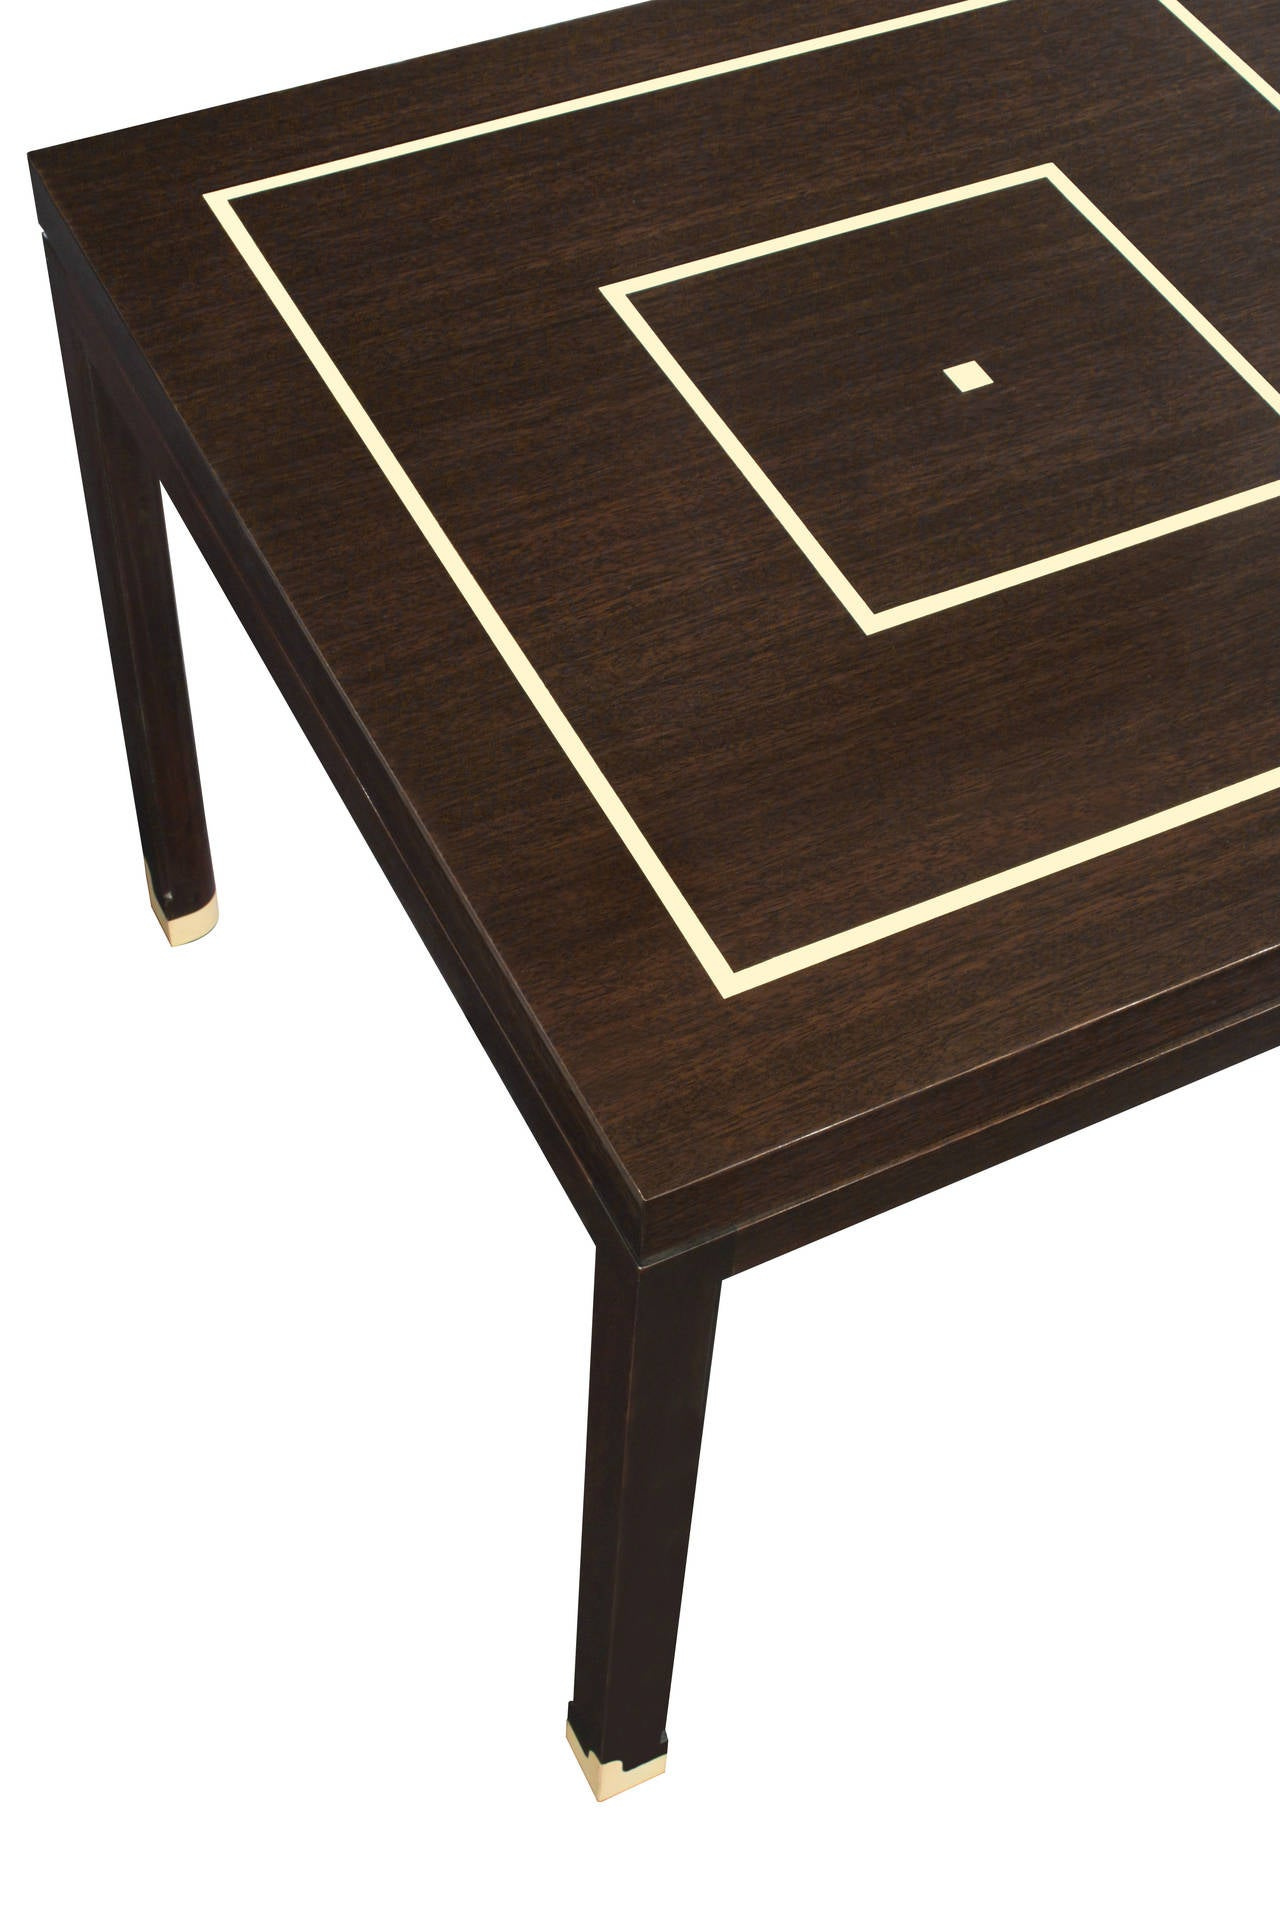 Mid-Century Modern Elegant Side Table with Inlays by Tommi Parzinger For Sale